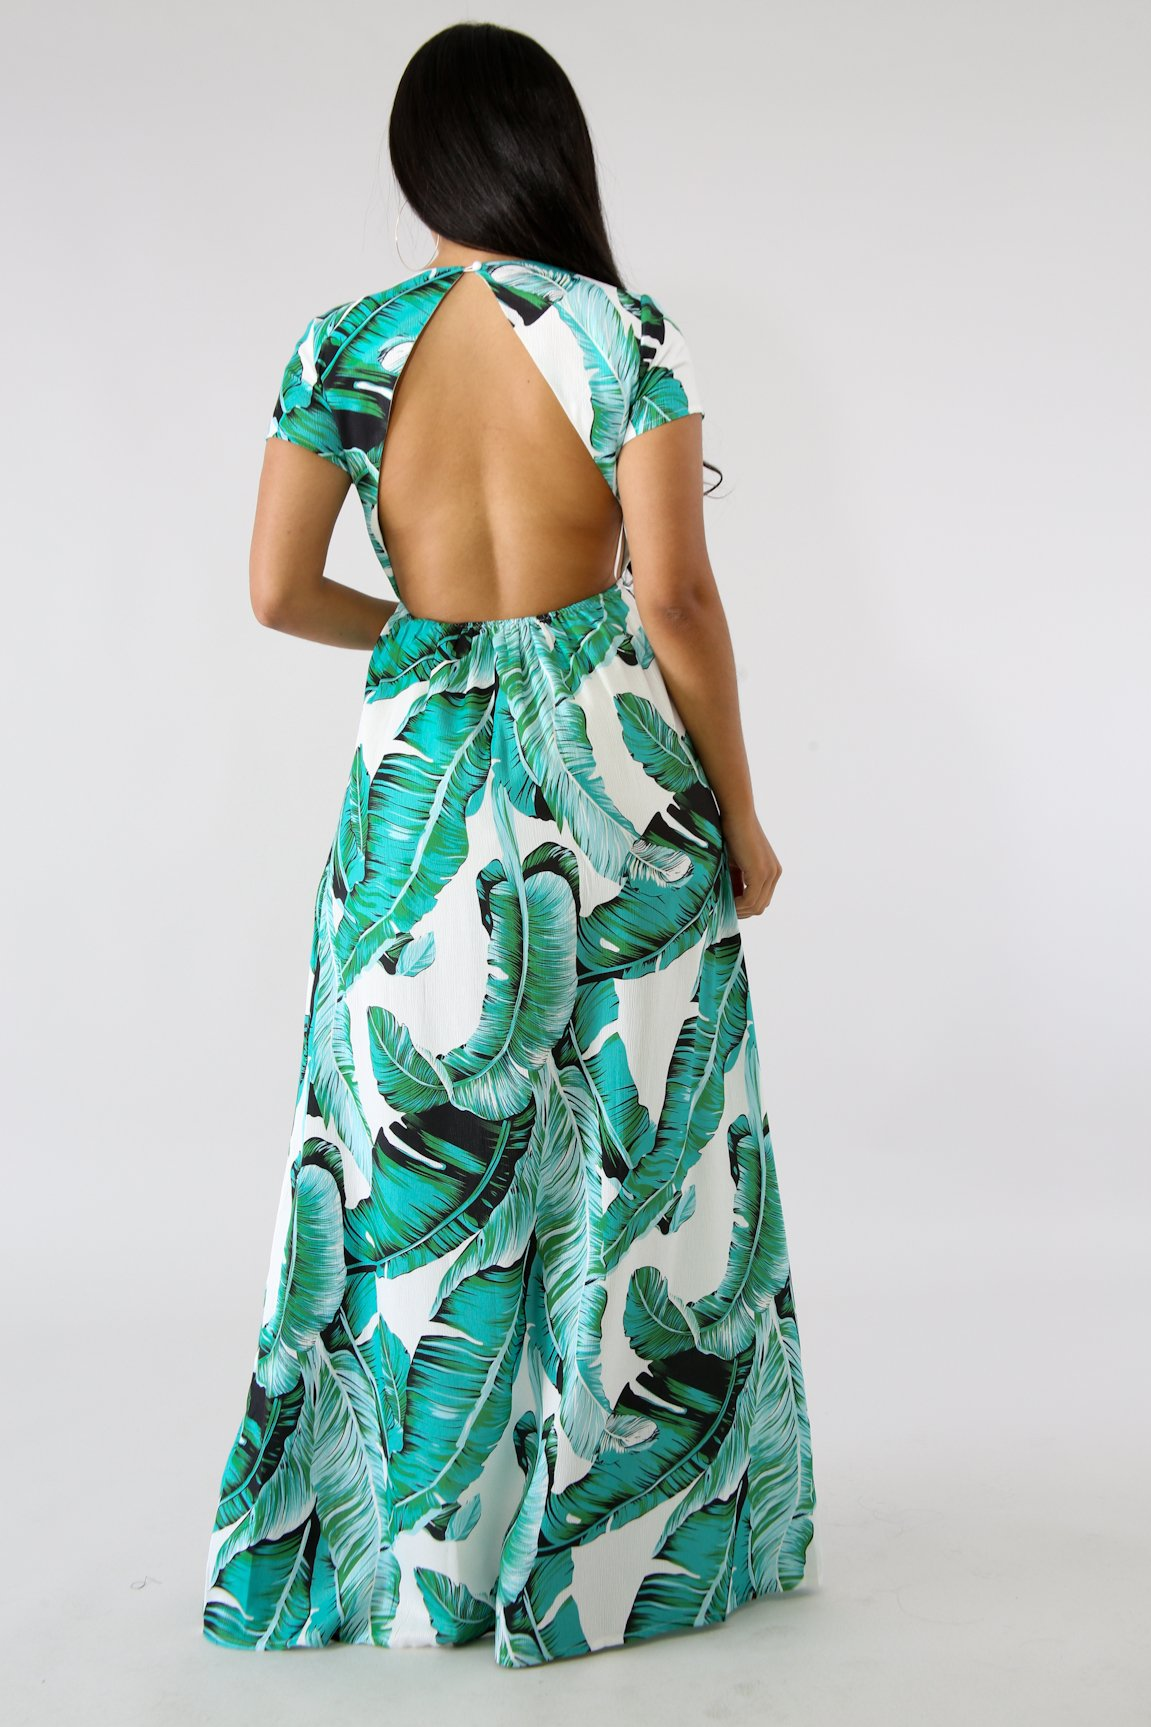 Havana Maxi Dress Fit Miami Style